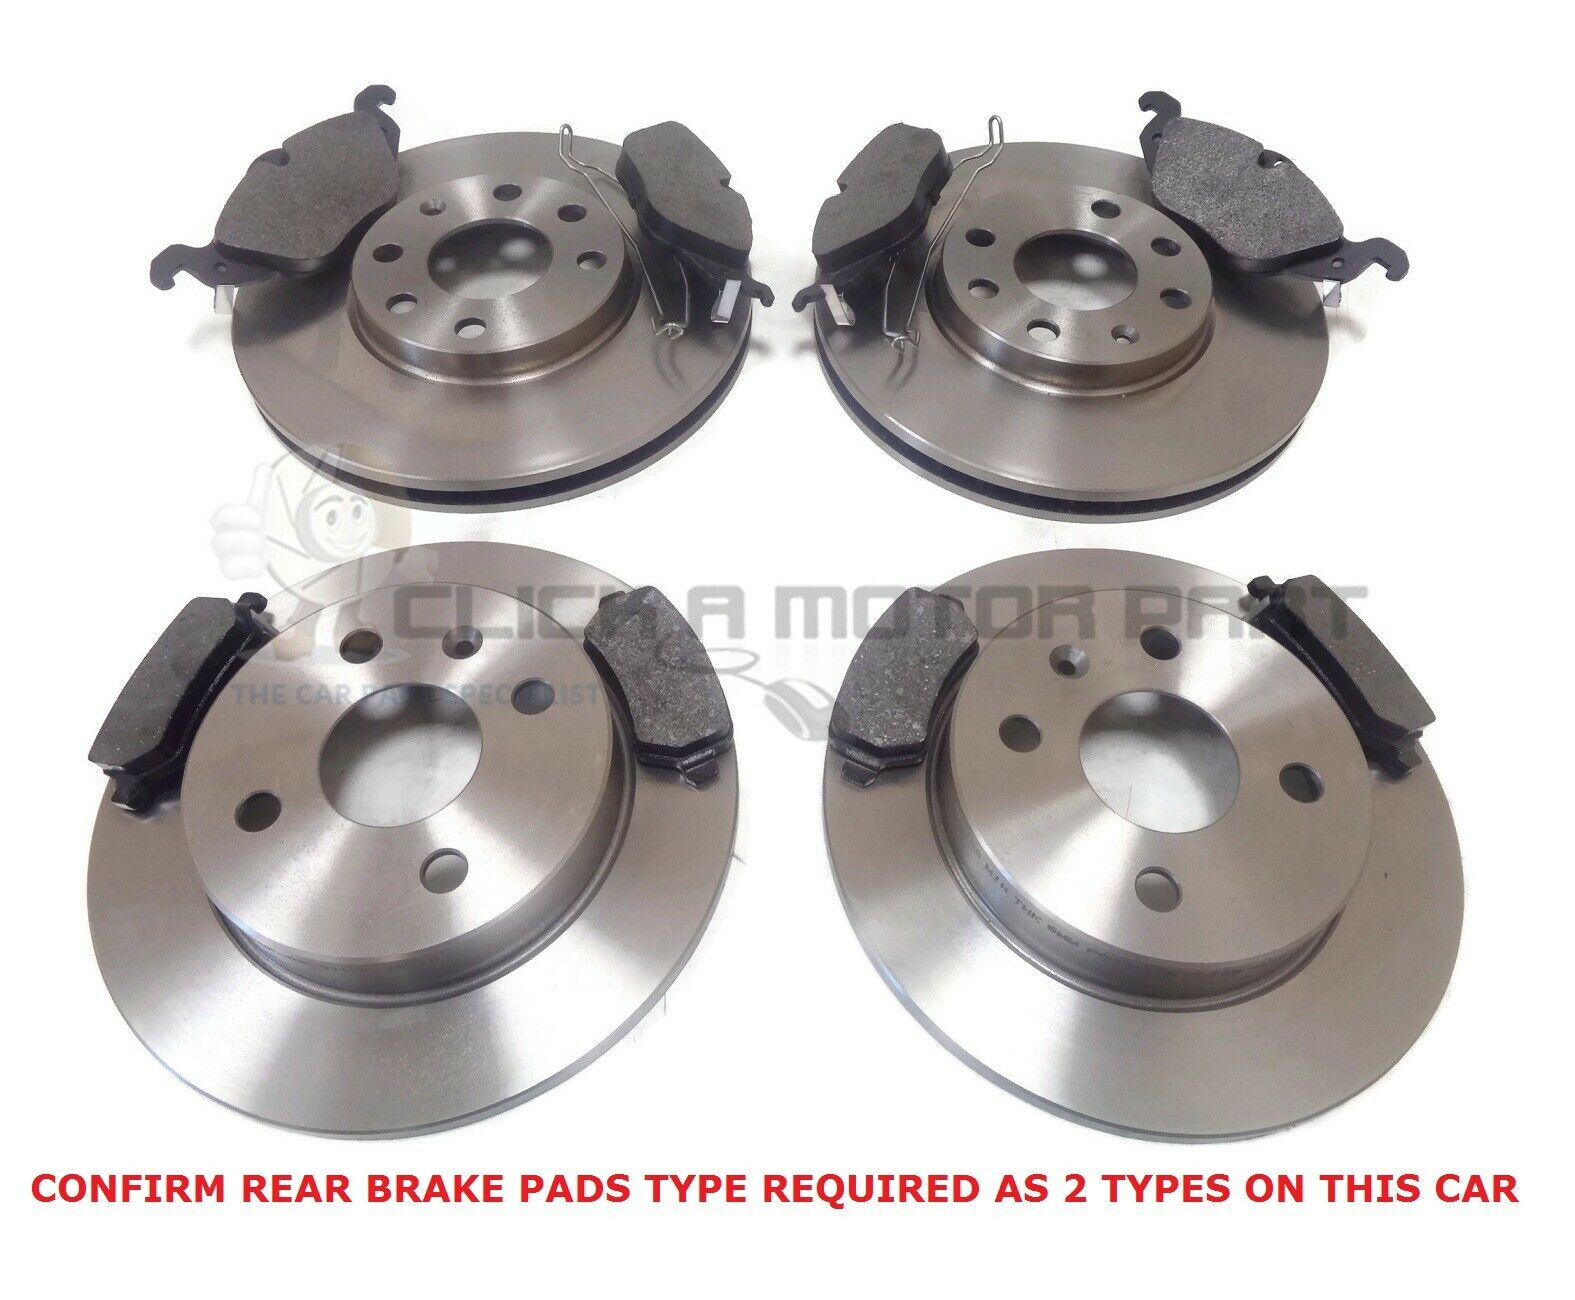 VAUXHALL ASTRA H MK5 1.3 1.7 CDTI 05-09 FRONT AND REAR BRAKE DISCS & PADS SET Car Parts